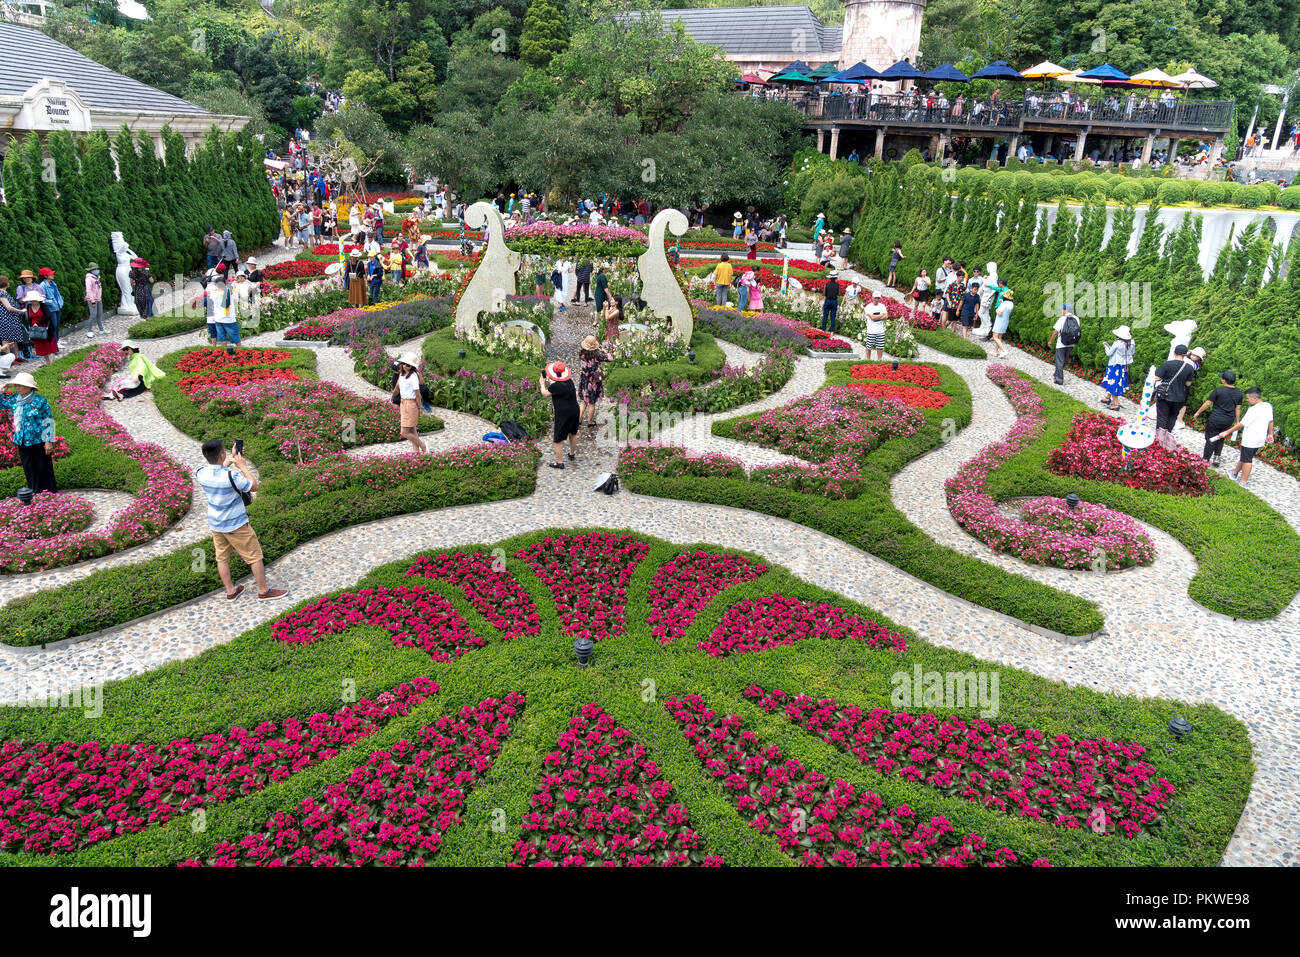 Tourists visit the beautiful flower garden of ba na hill ba na hill tourists visit the beautiful flower garden of ba na hill ba na hill mountain resort is a favorite destination for many tourists izmirmasajfo